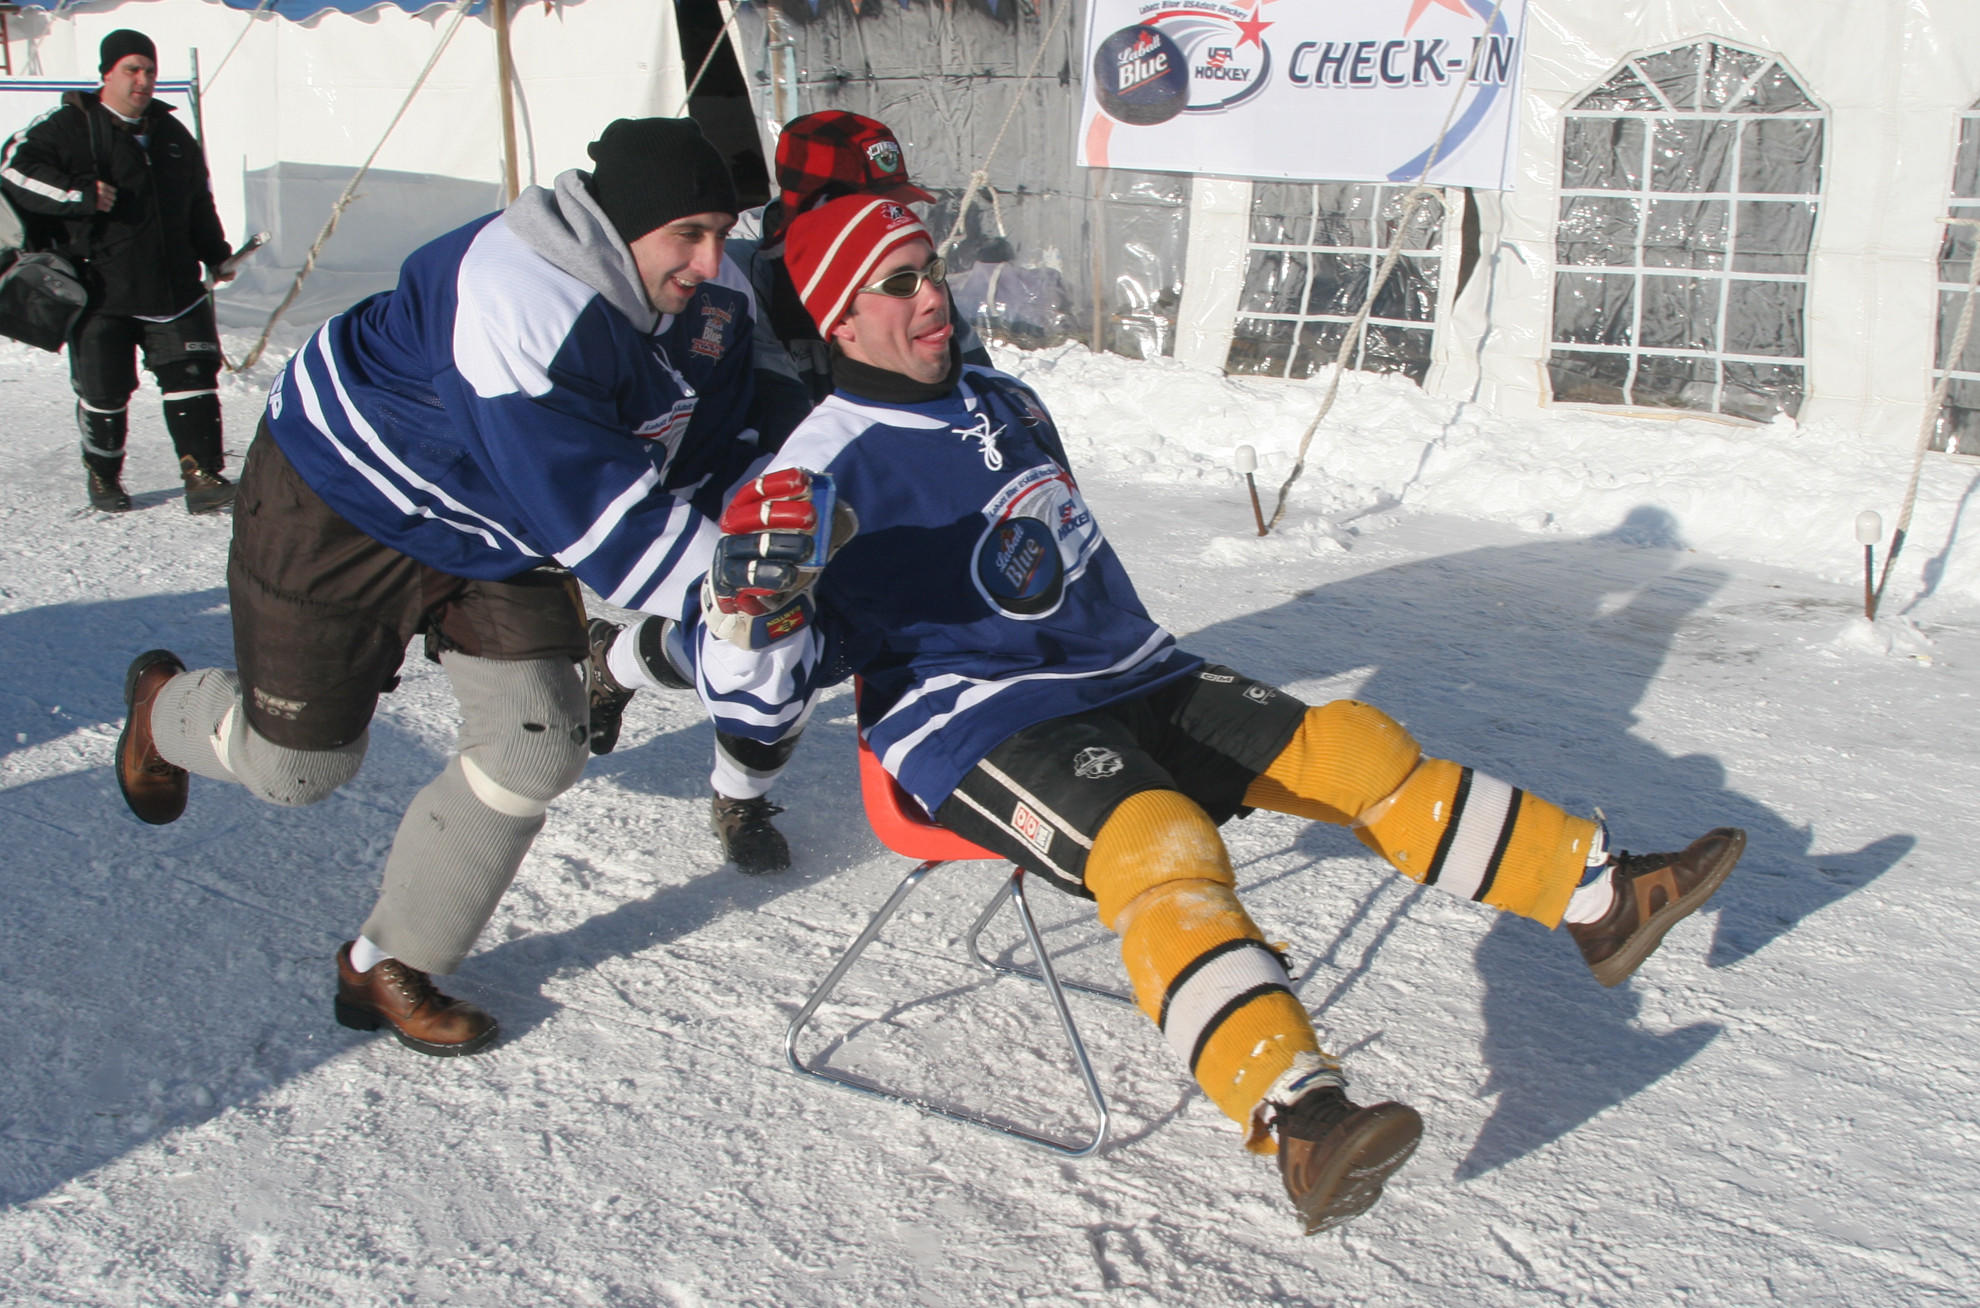 Jason Schleinzer, left, from Elmhurst, pushes Tyson Boyer, from Downers Grove, as they relax after their pond hockey game on Feb. 18, 2006.